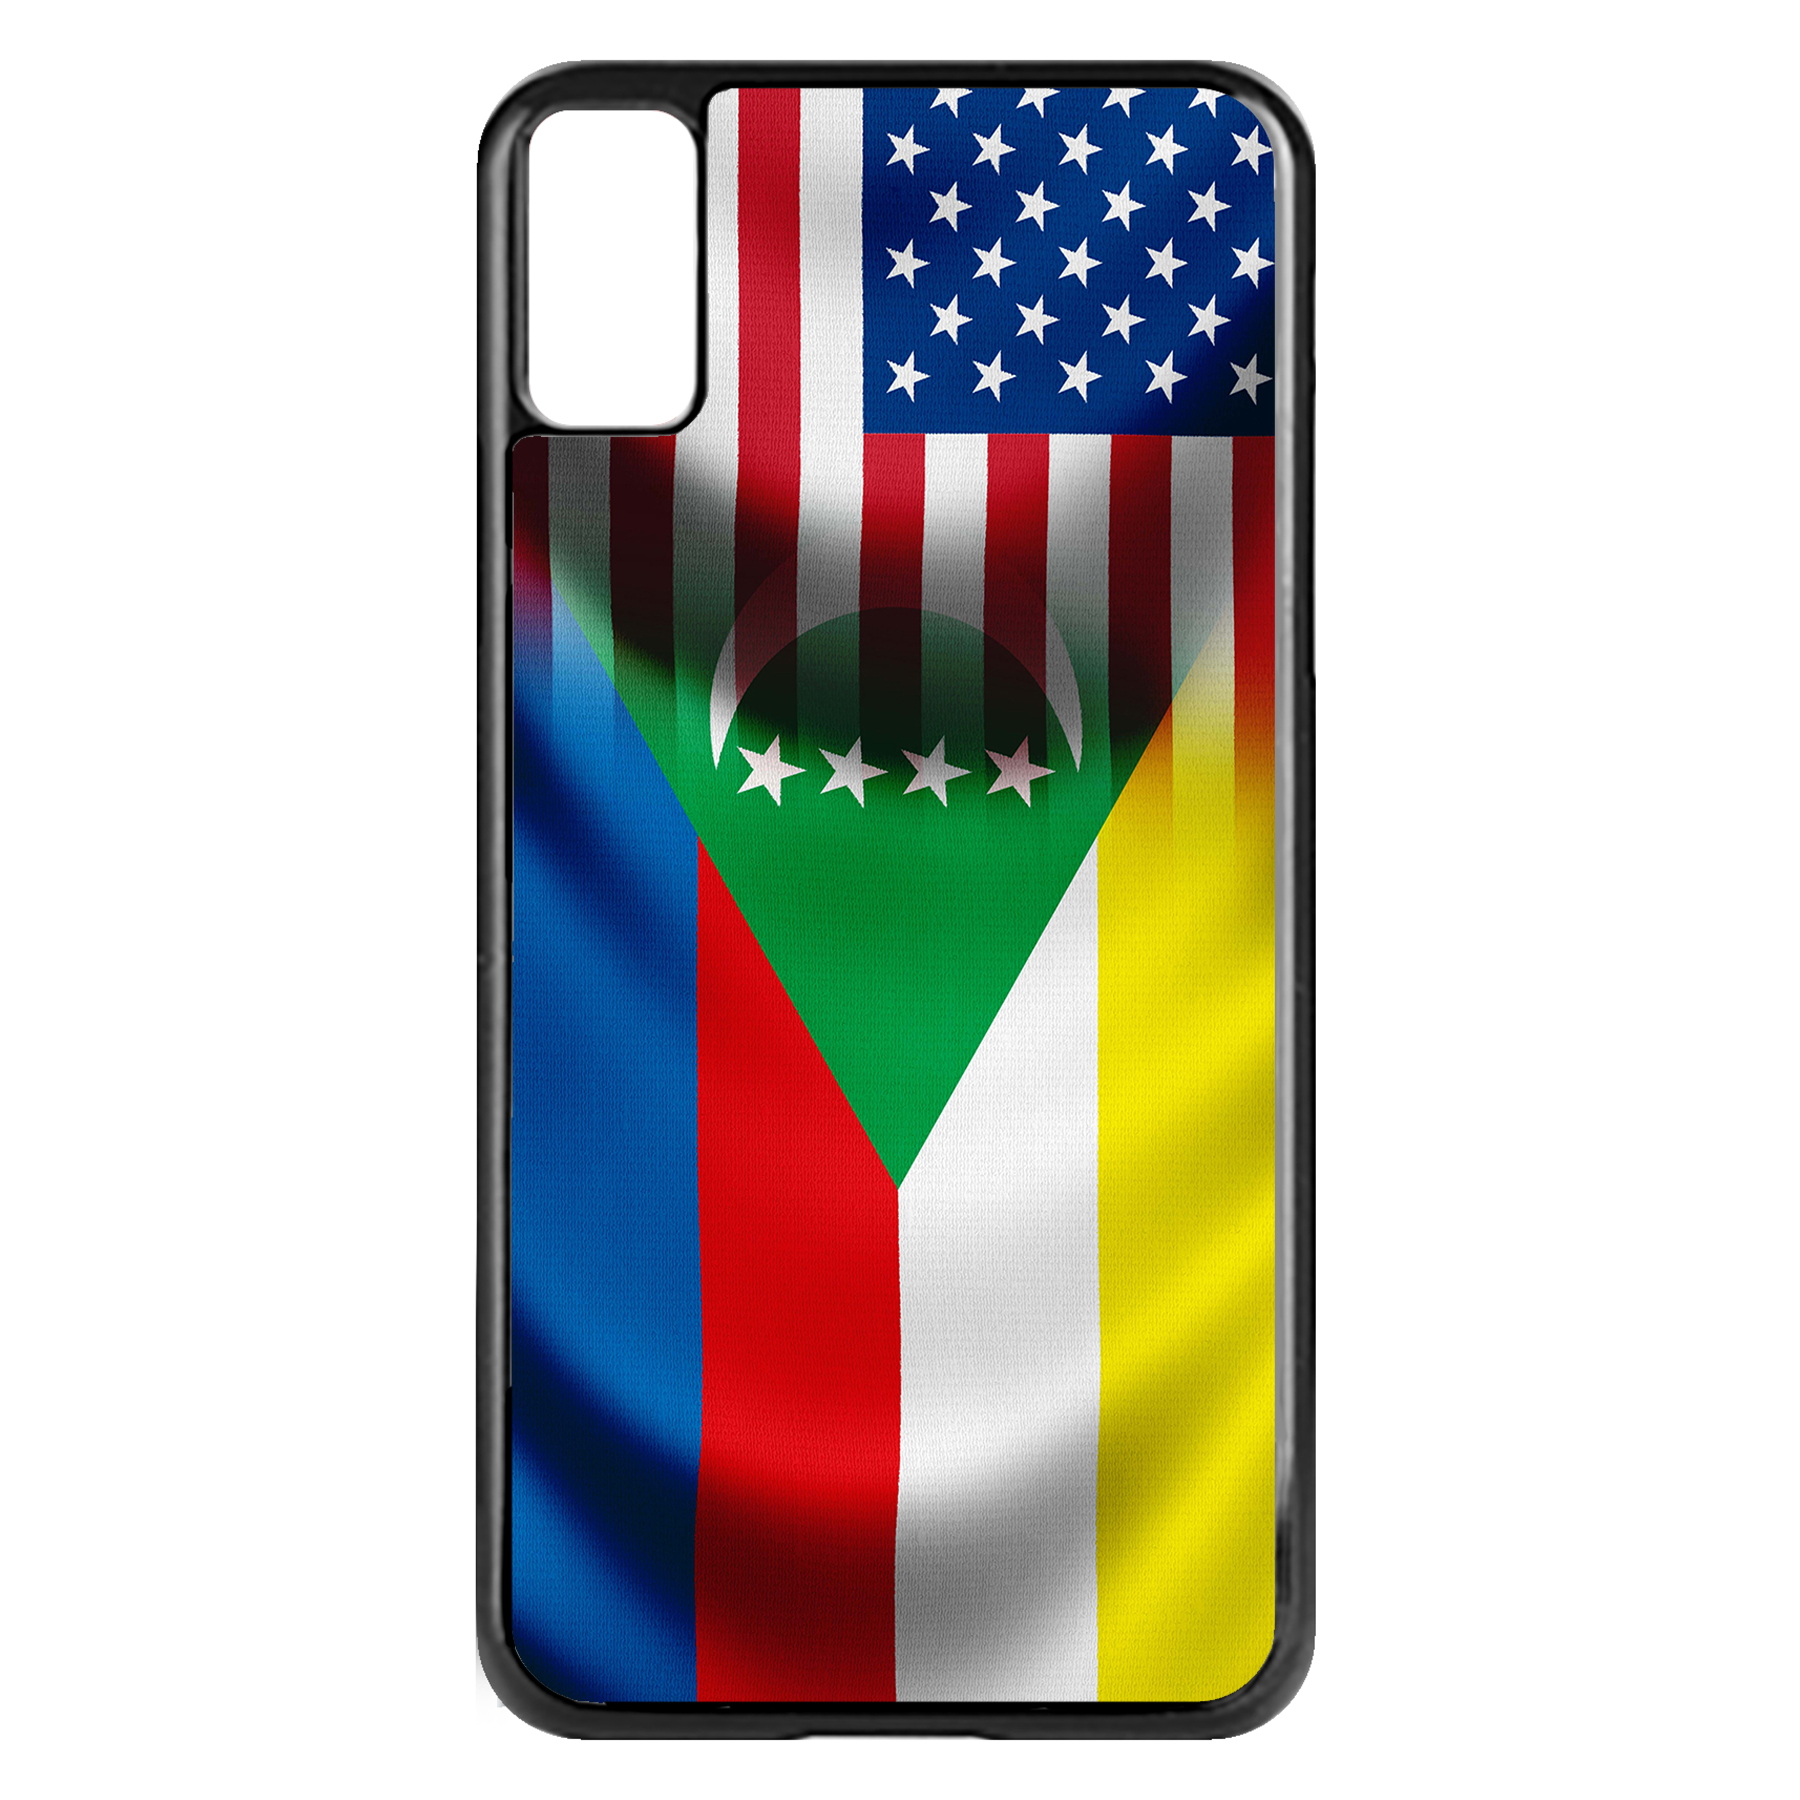 Apple-iPhone-Case-with-Flag-of-Comoros-Comorian-Many-Design-Options thumbnail 36